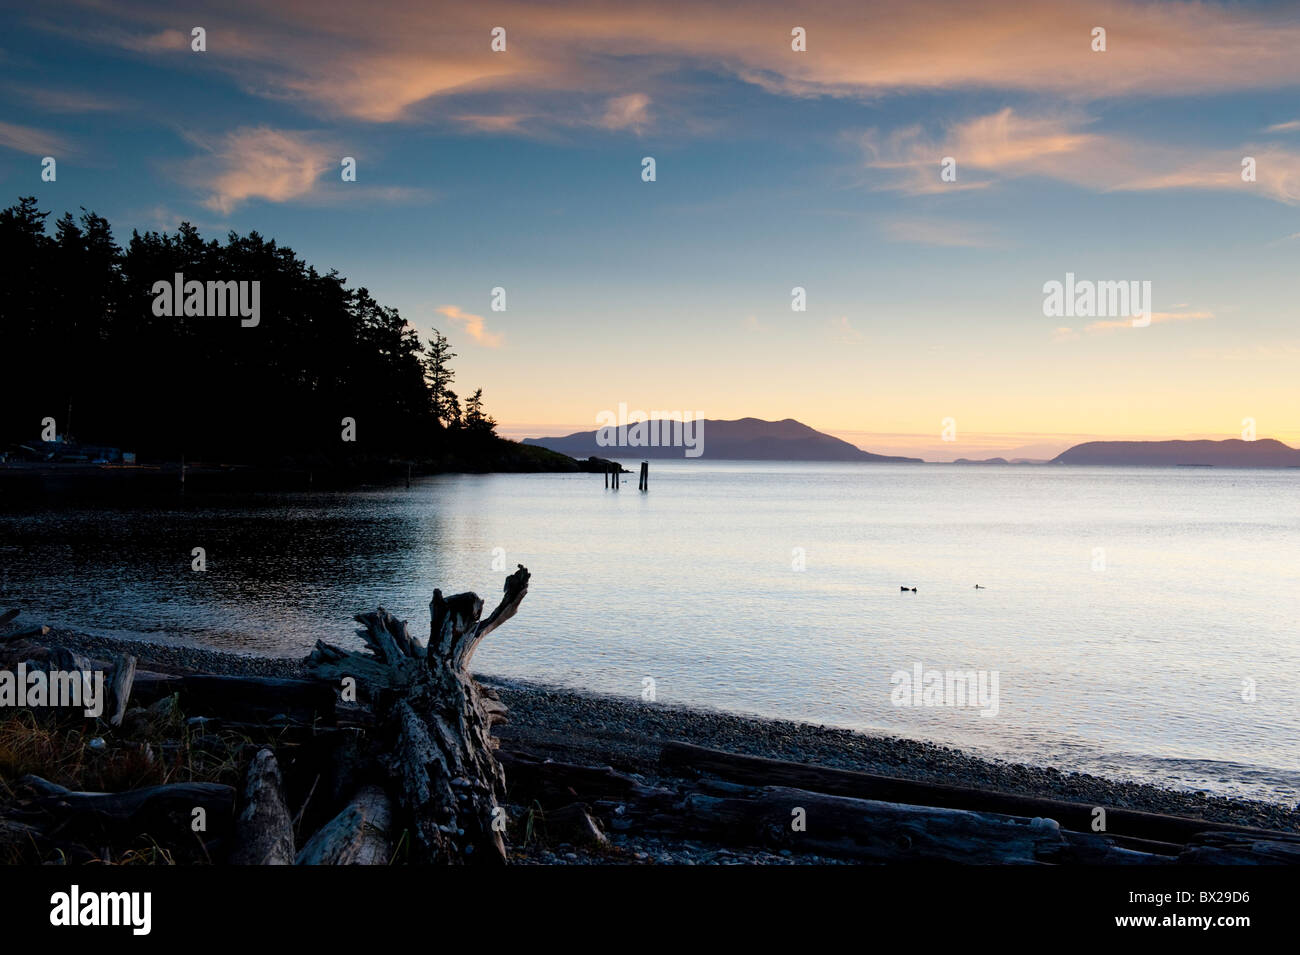 Sunset on a clear and calm autumn evening on Lummi Island, Washington in the Puget Sound area of the Pacific Northwest. Stock Photo